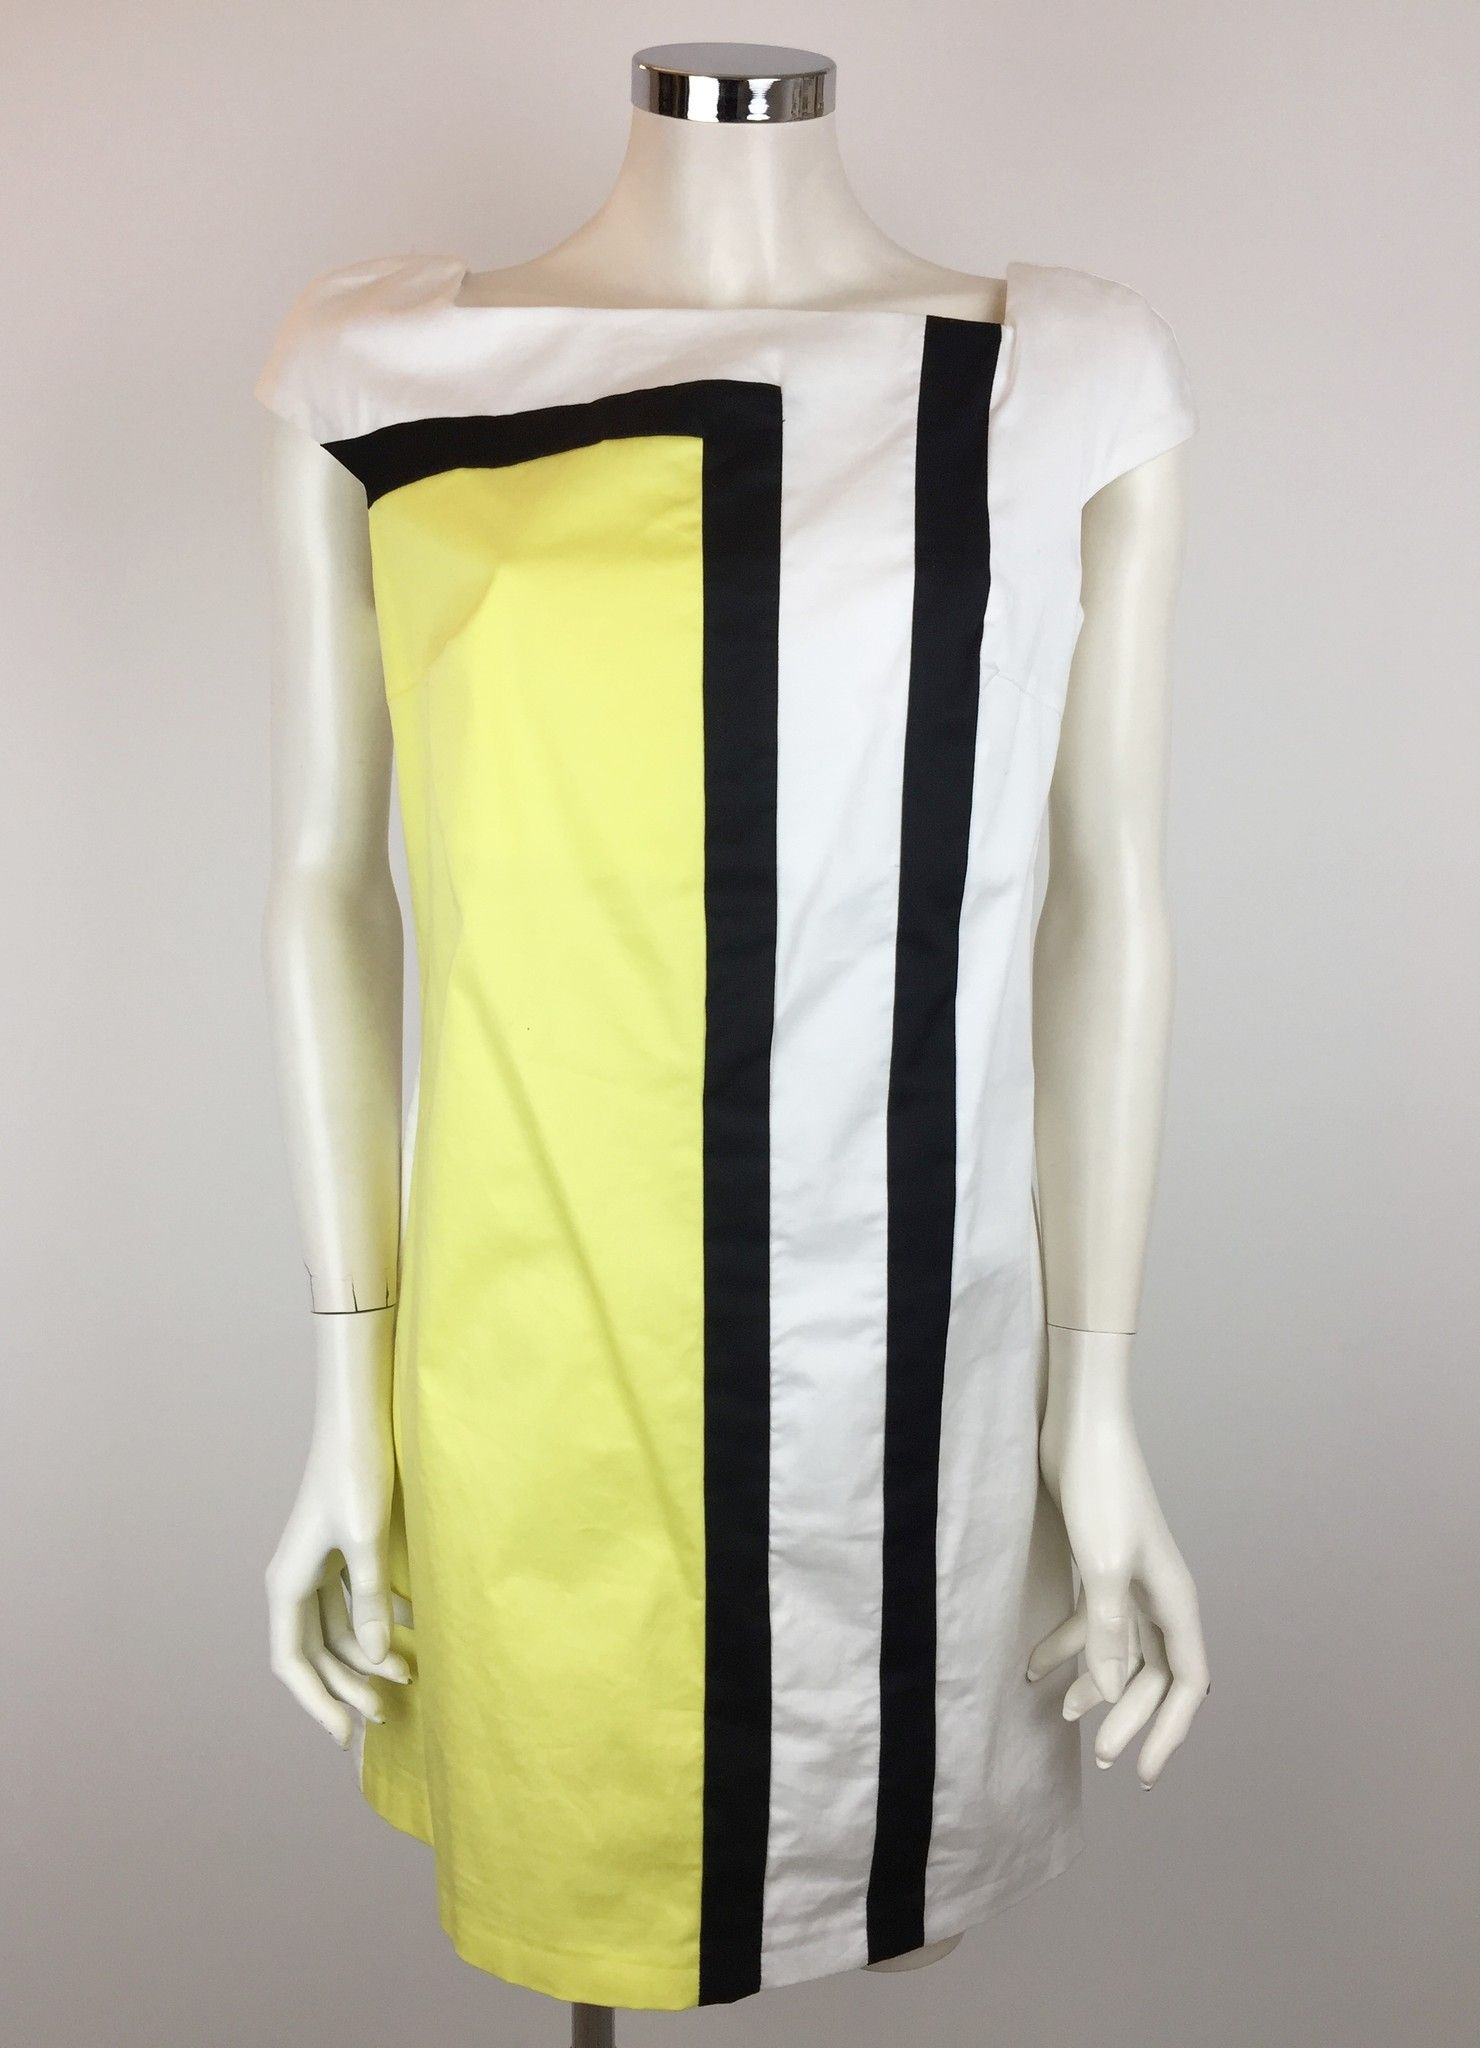 LadyBug Striped Dress with Yellow Insert Cod.2000P